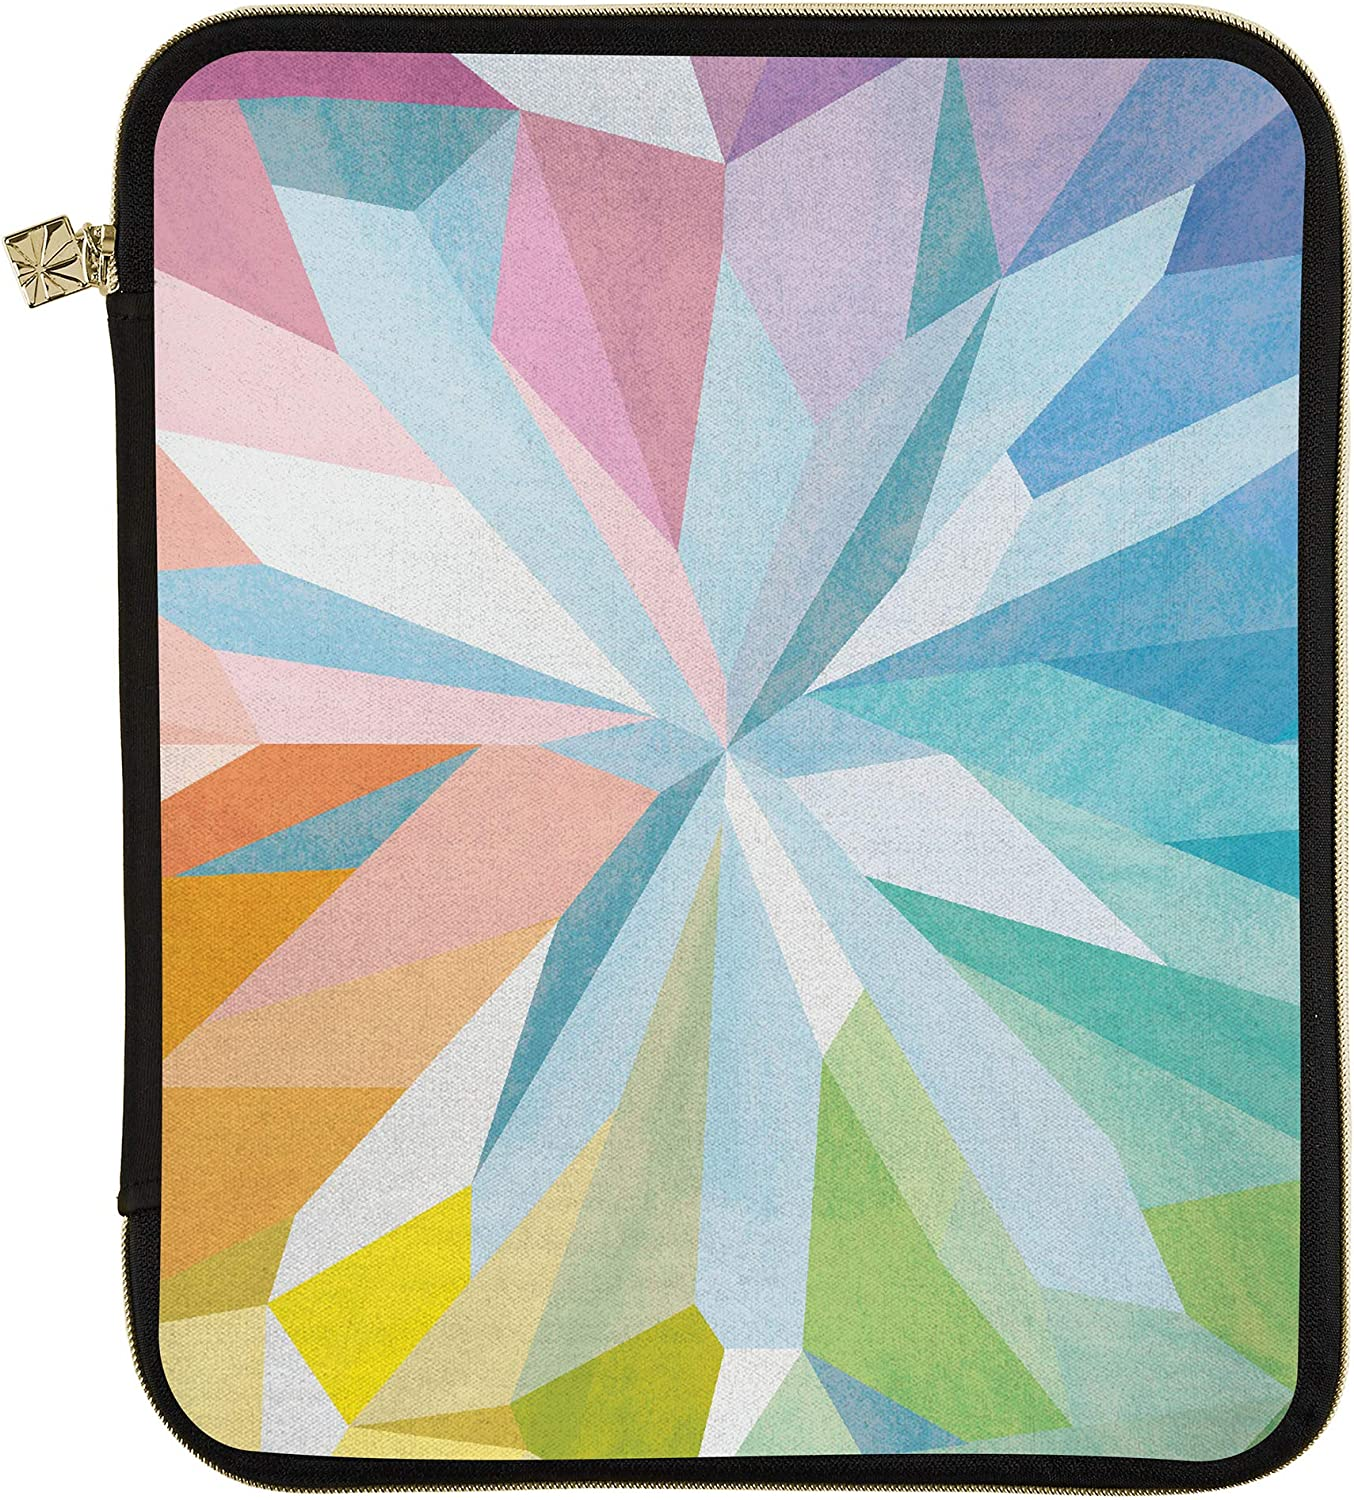 """Erin Condren Planner Folio - Kaleidoscope Colorful, Large (10"""" x 13""""), Organizer and Portfolio Case Holder for Planners, Documents and Laptops with Gold Zipper and Inner Pouch"""